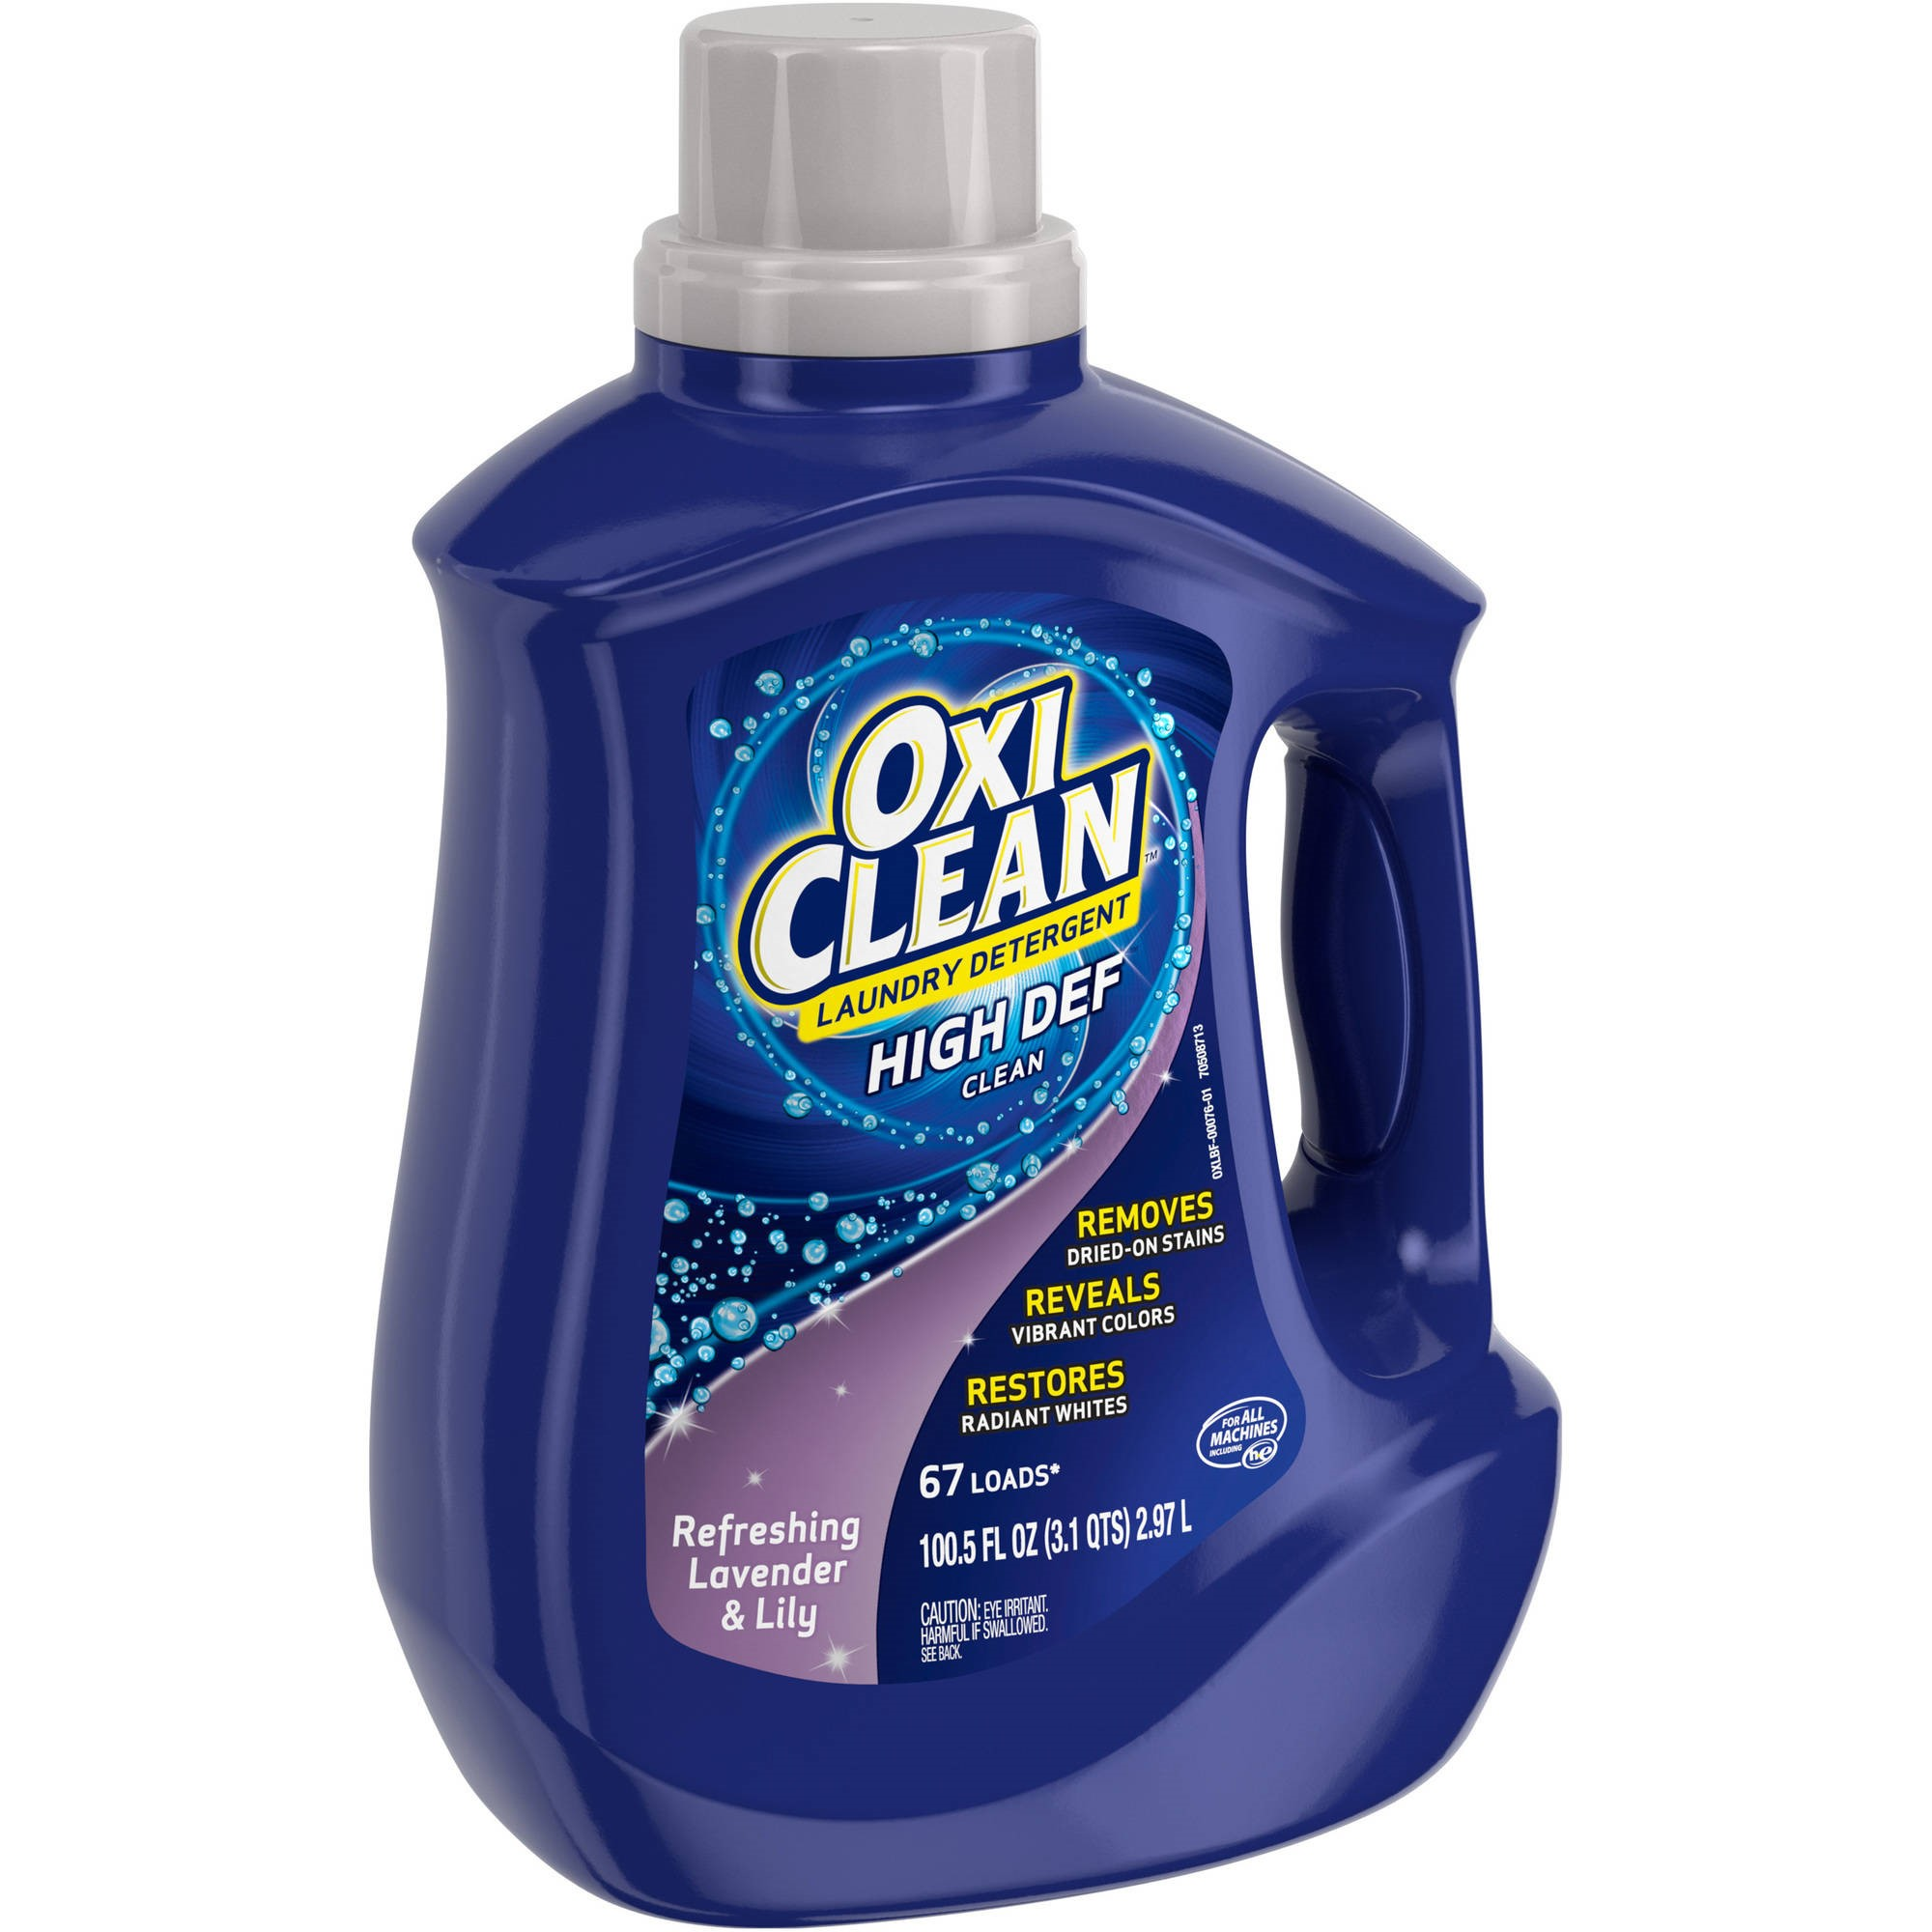 Oxiclean Refreshing Lavender & Lily High Def Clean Liquid Laundry Detergent, 100.5 fl oz